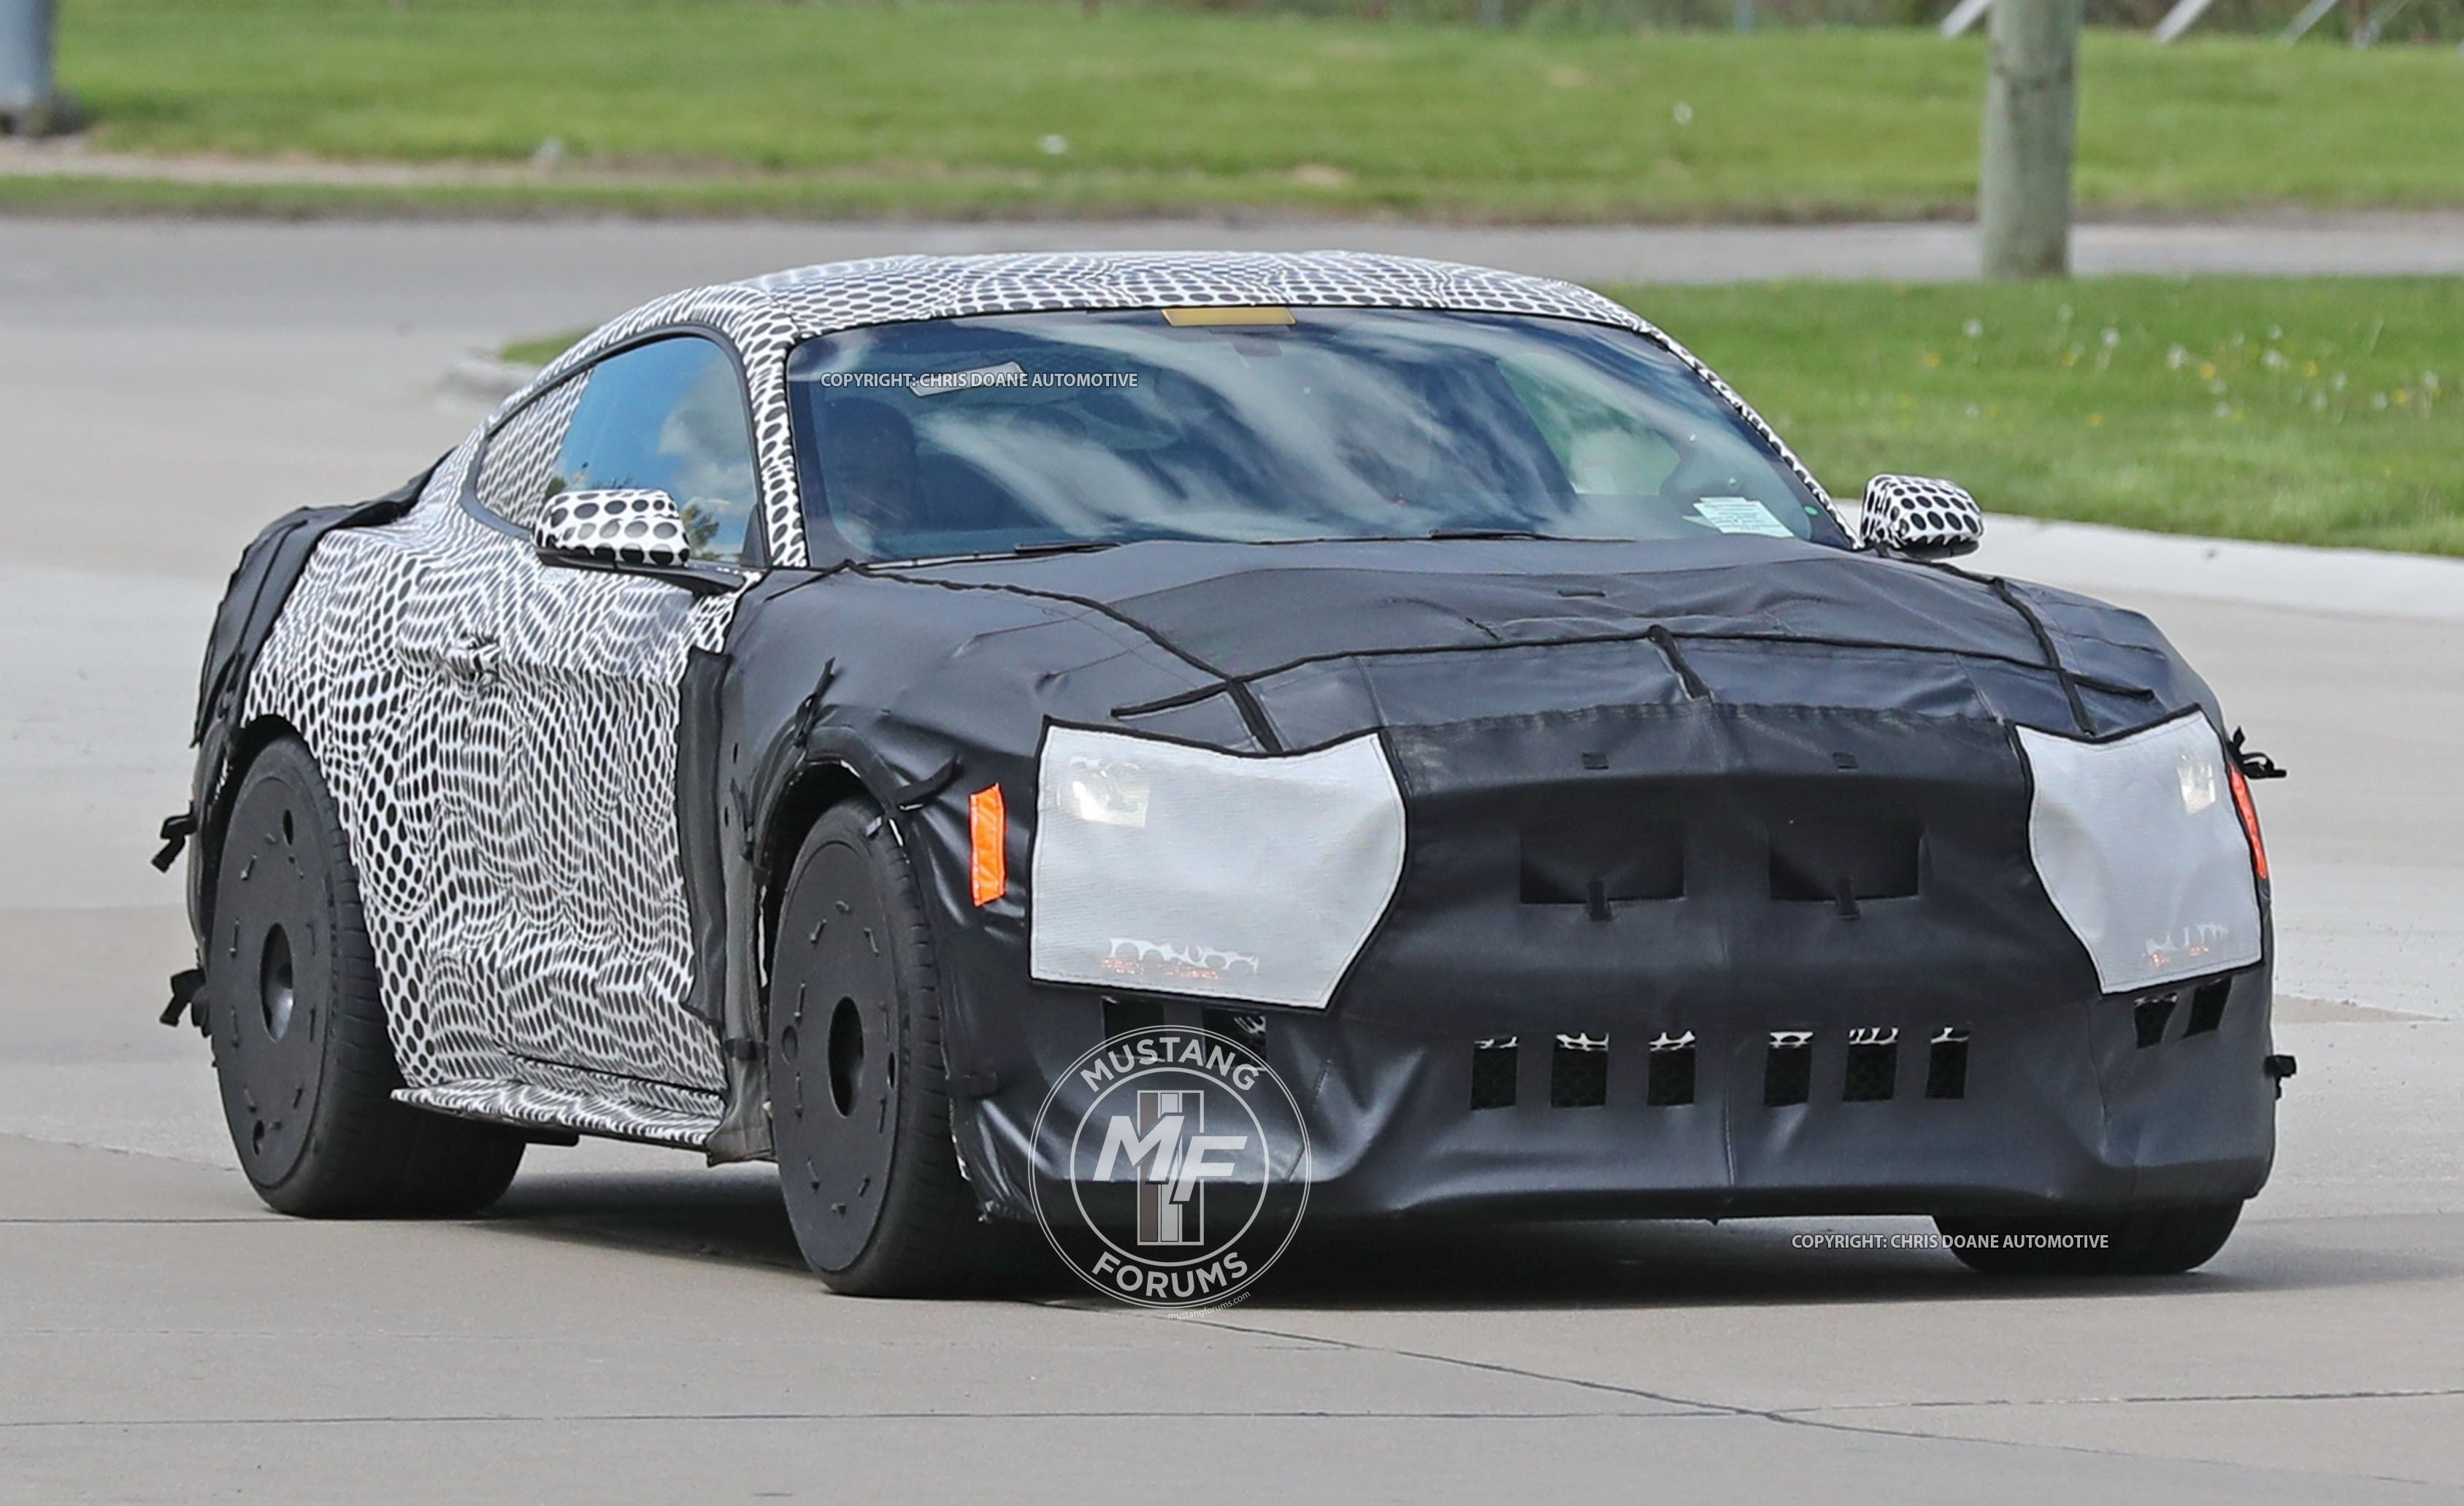 51 All New Spy Shots Ford Mustang Svt Gt 500 Concept